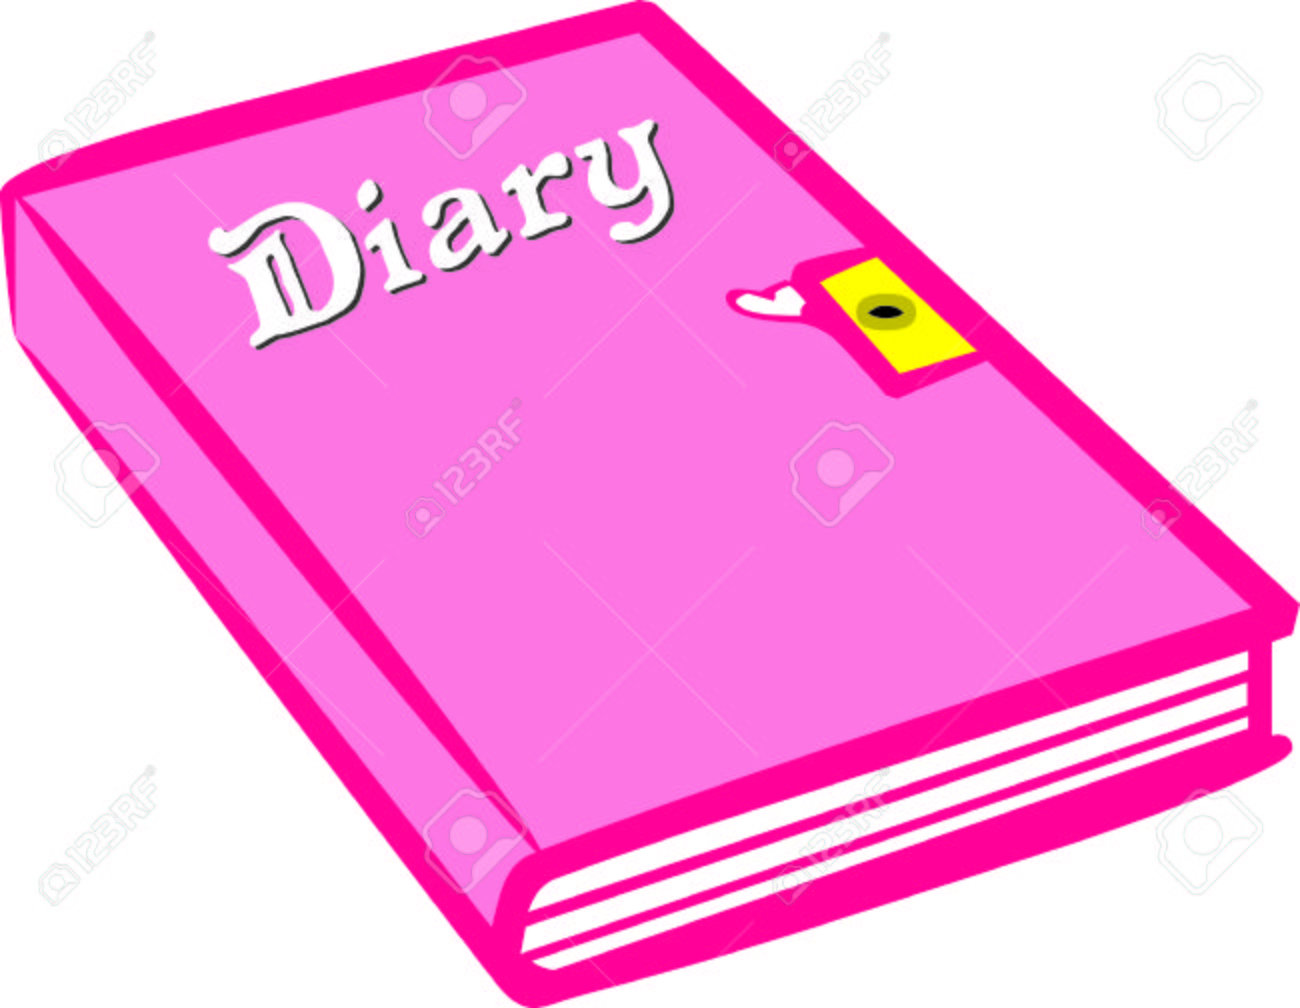 Collection of 14 free Pink clipart diary bill clipart dollar sign.